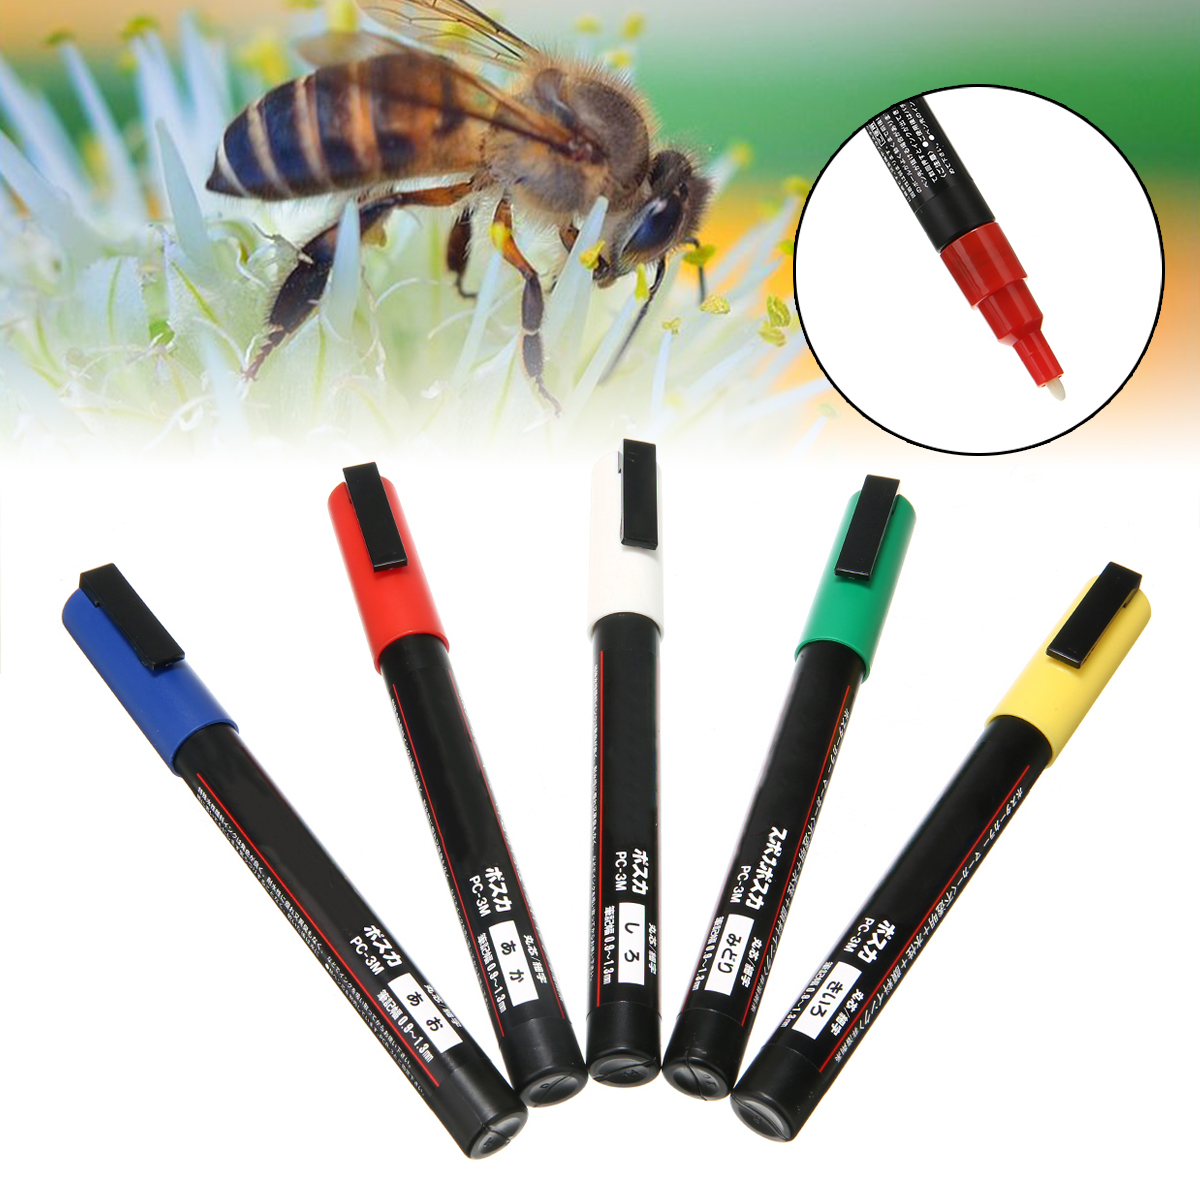 5 pcs Beekeeper Marker Pen For Marking Queen Bee Pen Marker Paint Tool Set Blue/White/Red/Green/Yellow 5 Colors